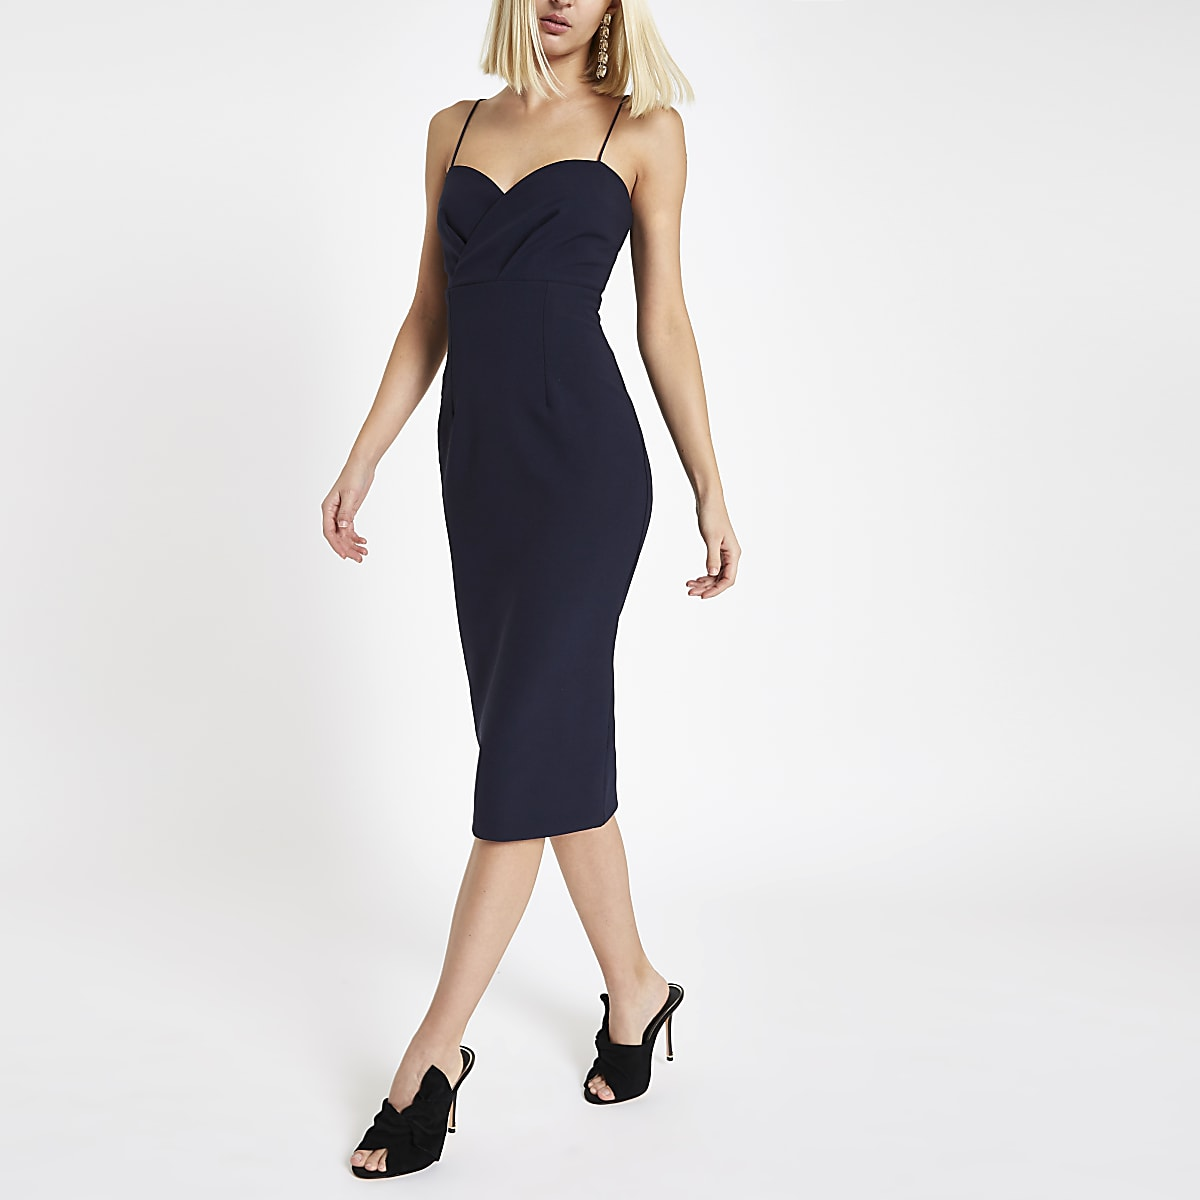 Navy tulip style bodycon midi dress